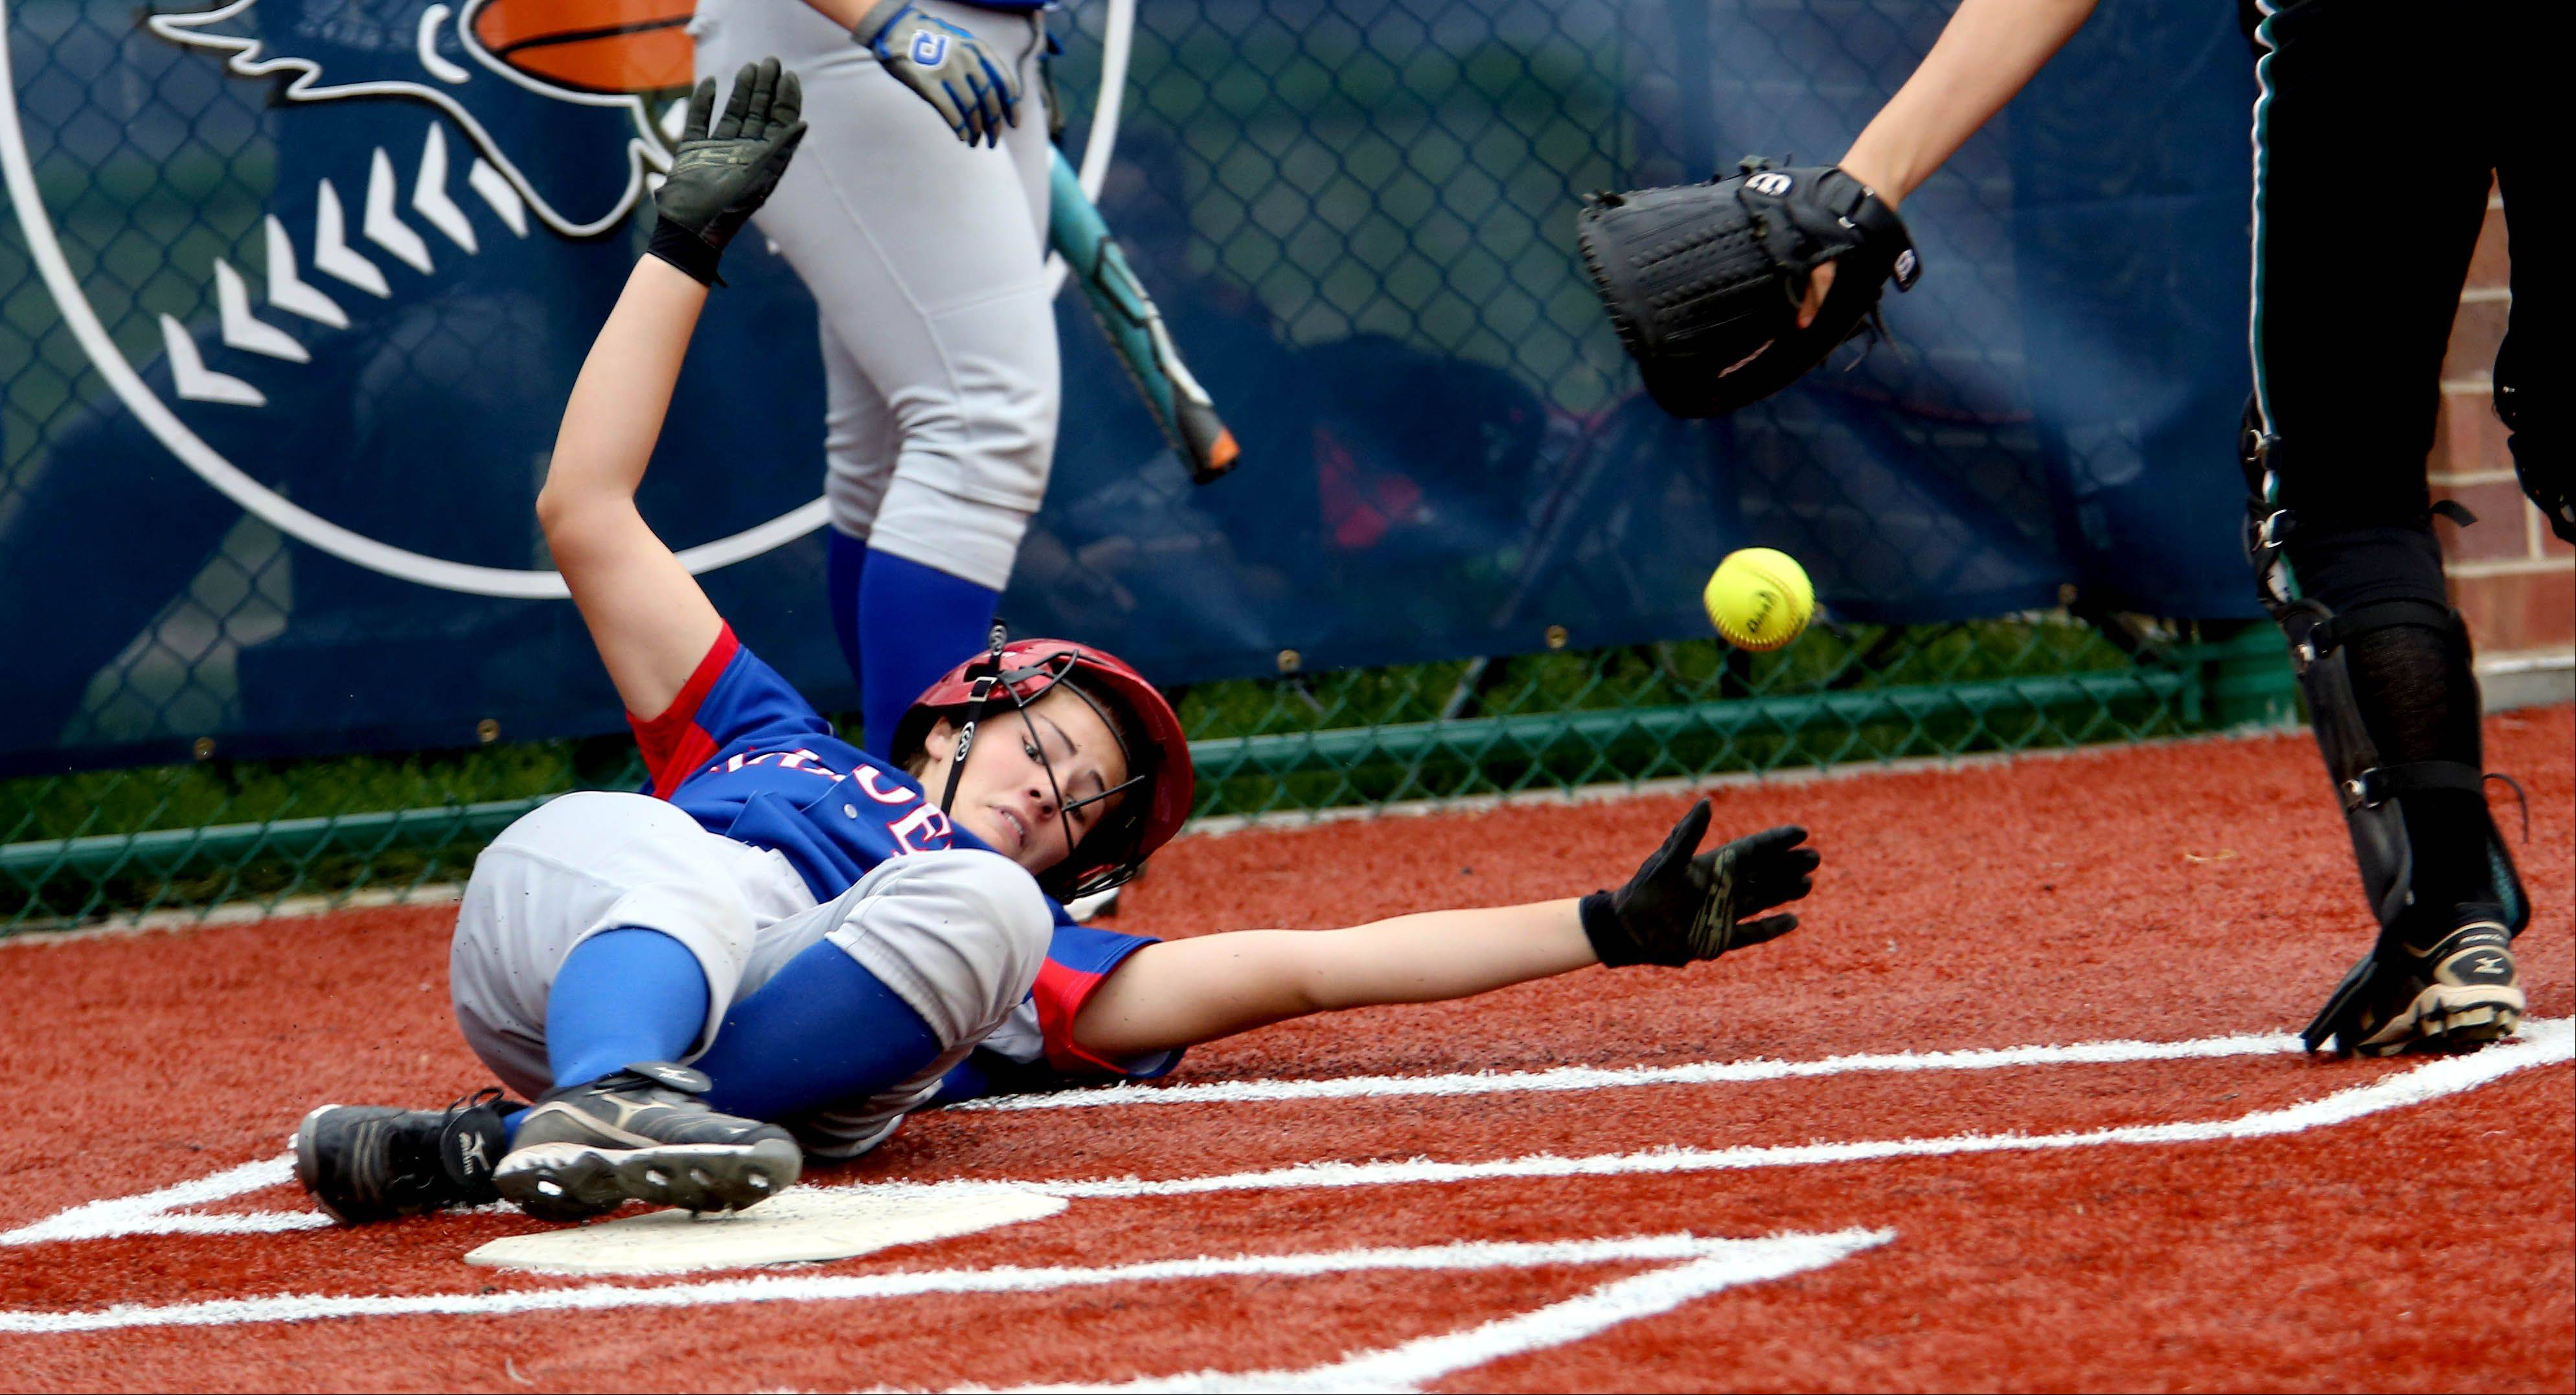 Jane Trzaska of Glenbard South slides into home plate ahead of the ball in the first inning during action against Evergreen Park in Class 3A sectional semifinal softball on Tuesday in La Grange.